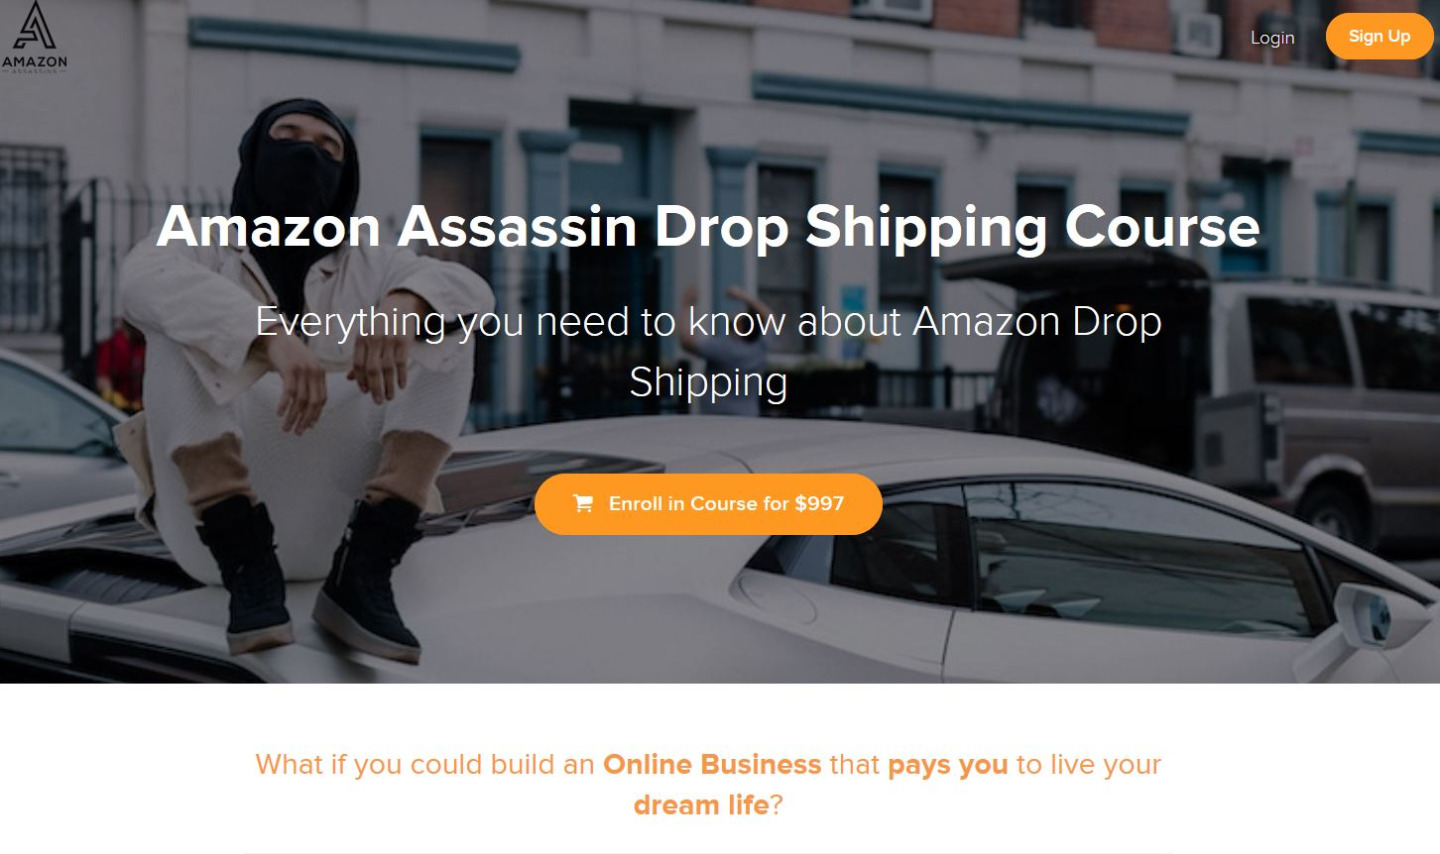 Matthew Gambrell - Amazon Assassin Drop Shipping Course